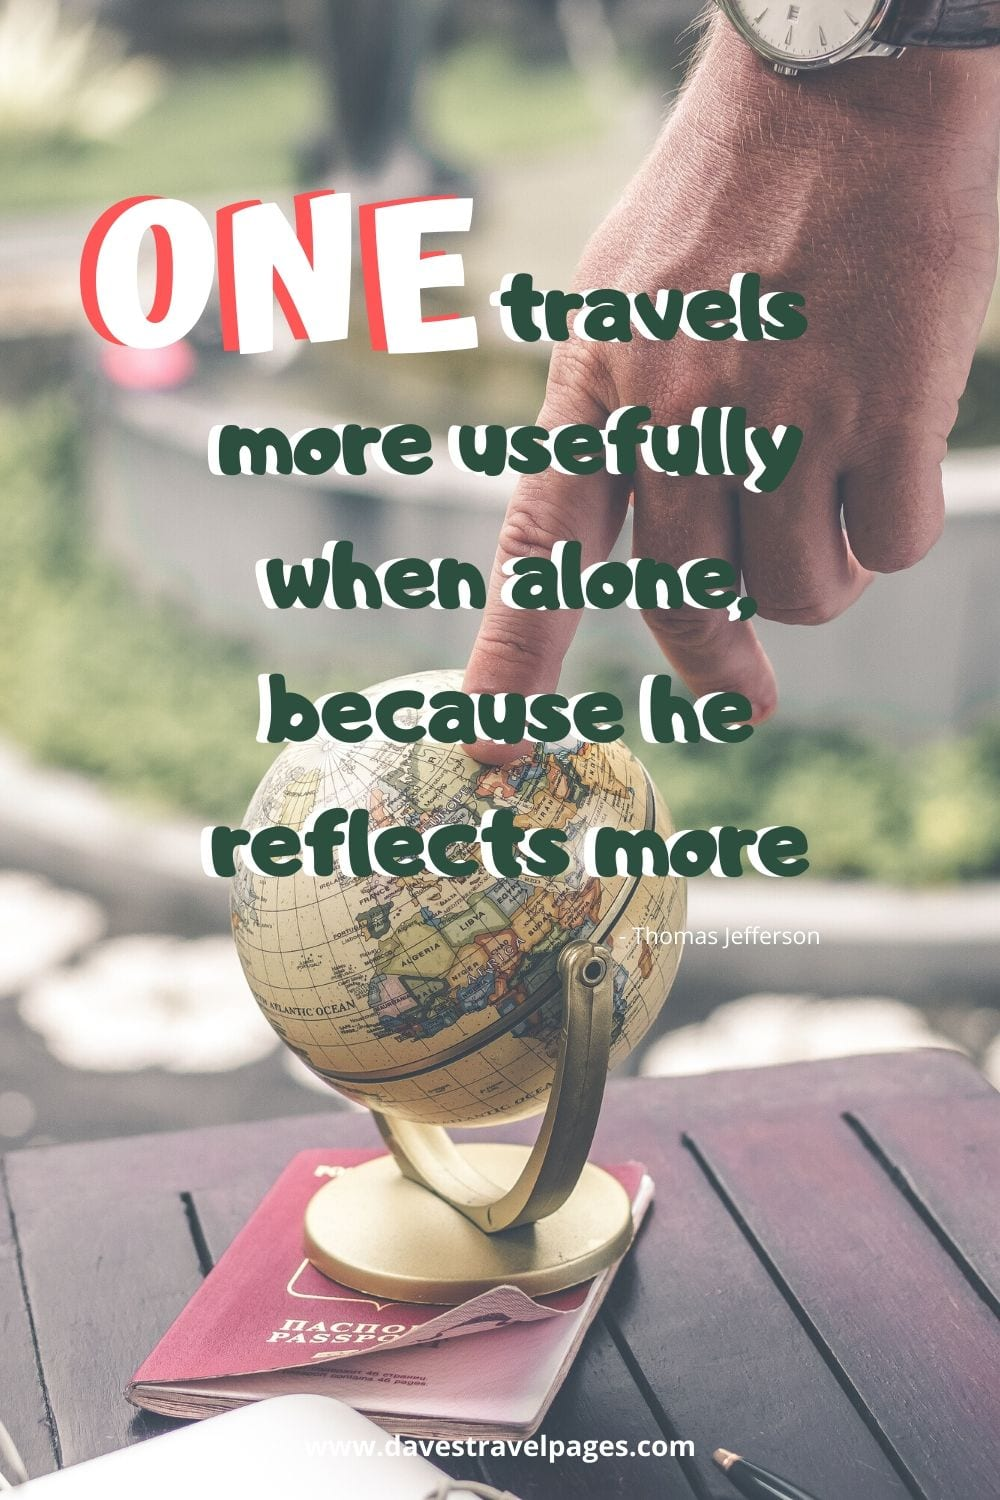 Quotes about travel - One travels more usefully when alone, because he reflects more. Thomas Jefferson